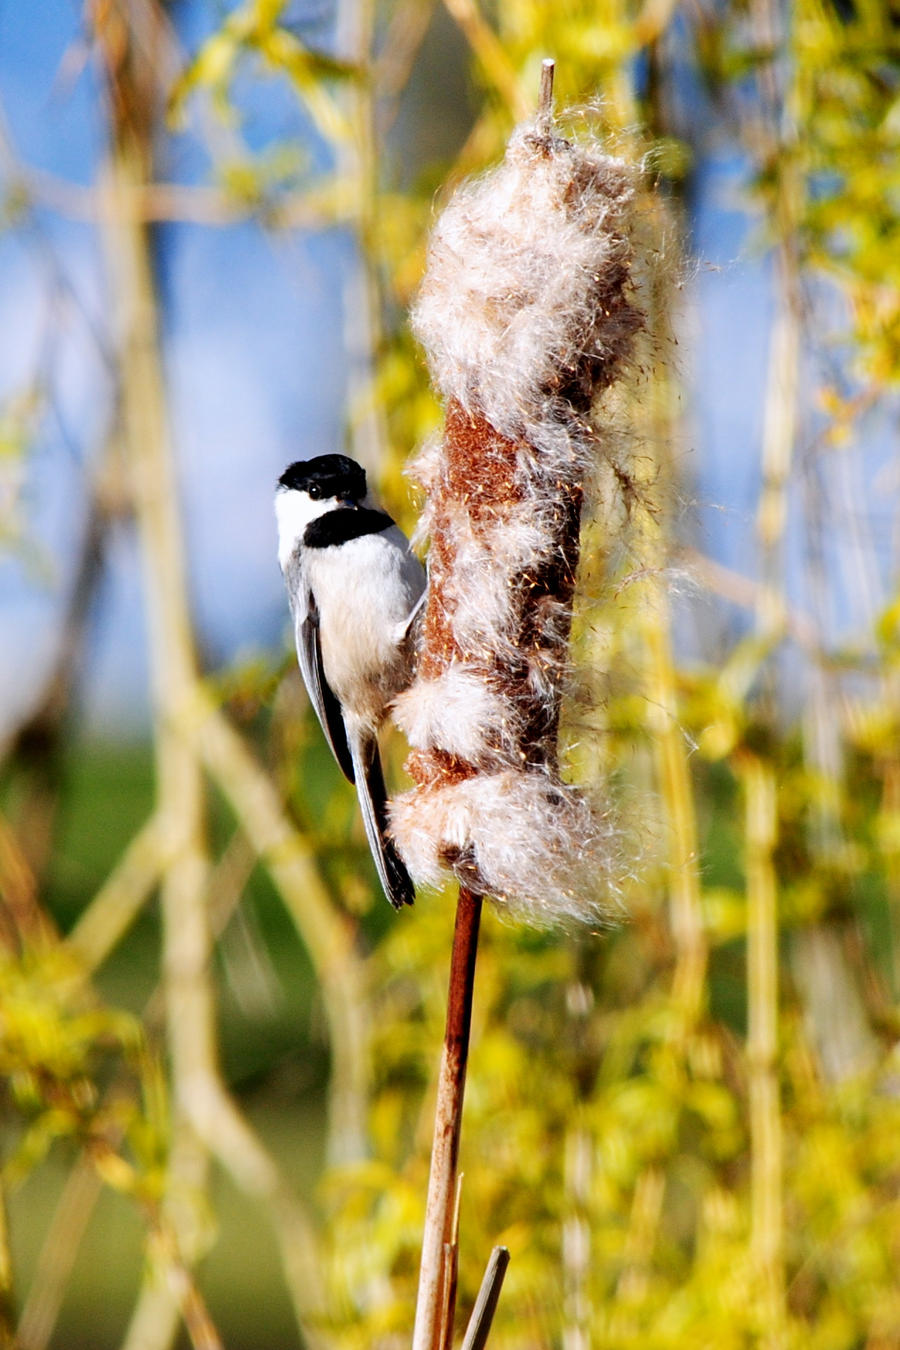 Black Capped Chickadee by salohcin19